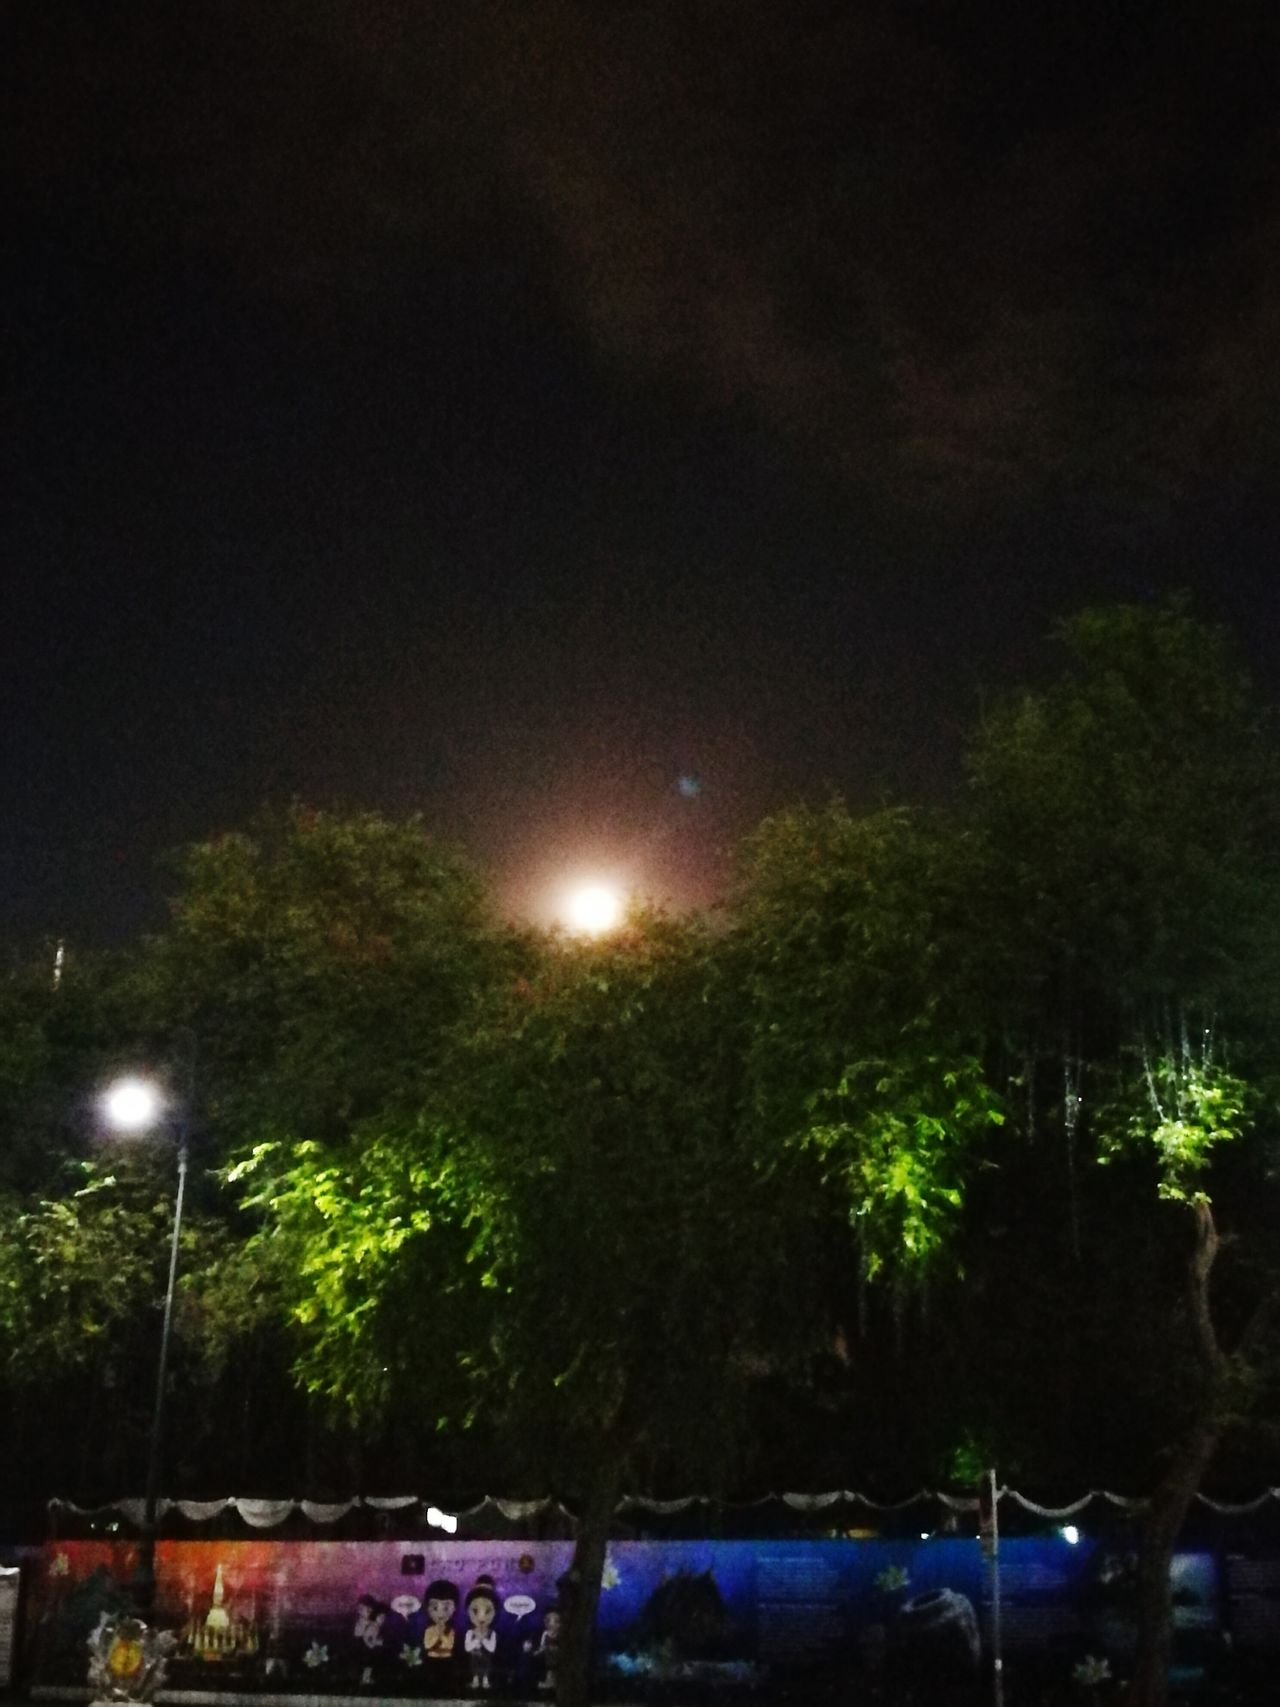 Super Moon Moon Shots Moon_collection Tree Landscape Shot_4_spot_originals Angle And Perspective Beautifully Organized Nightshot Outdoors